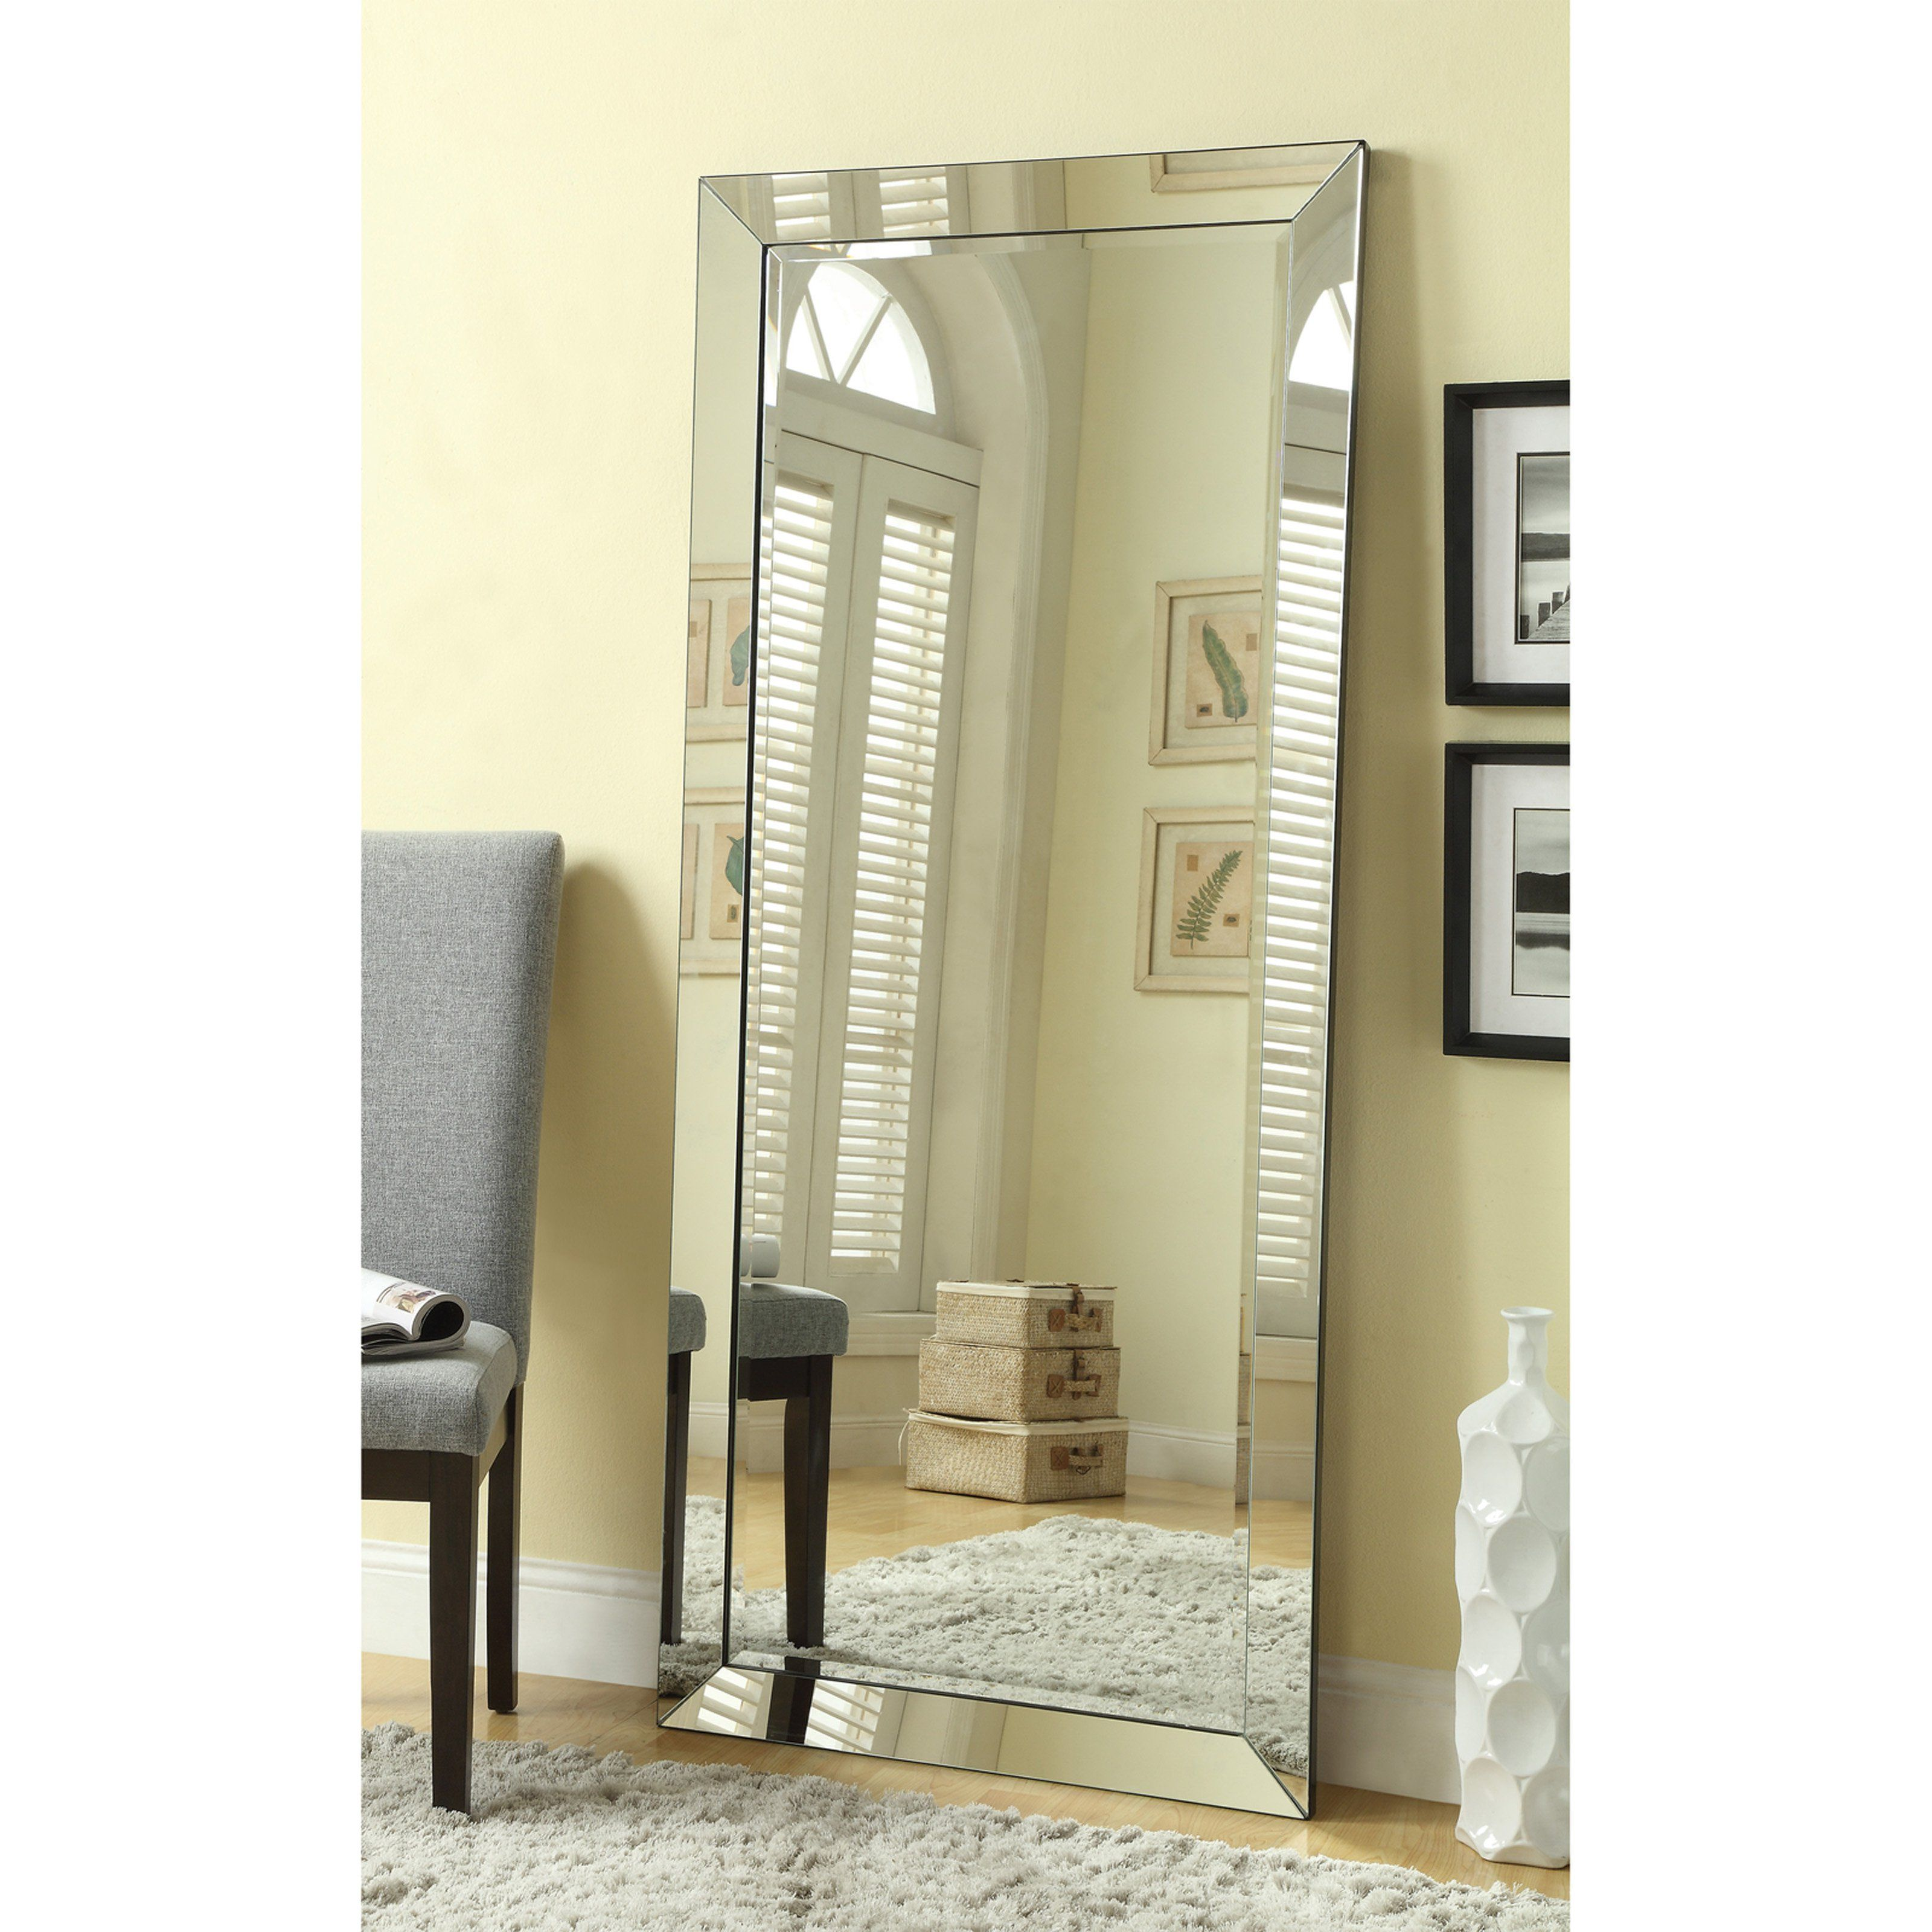 Coaster Furniture Beveled Floor Mirror 30w X 70h In From  # Muebles Coaster